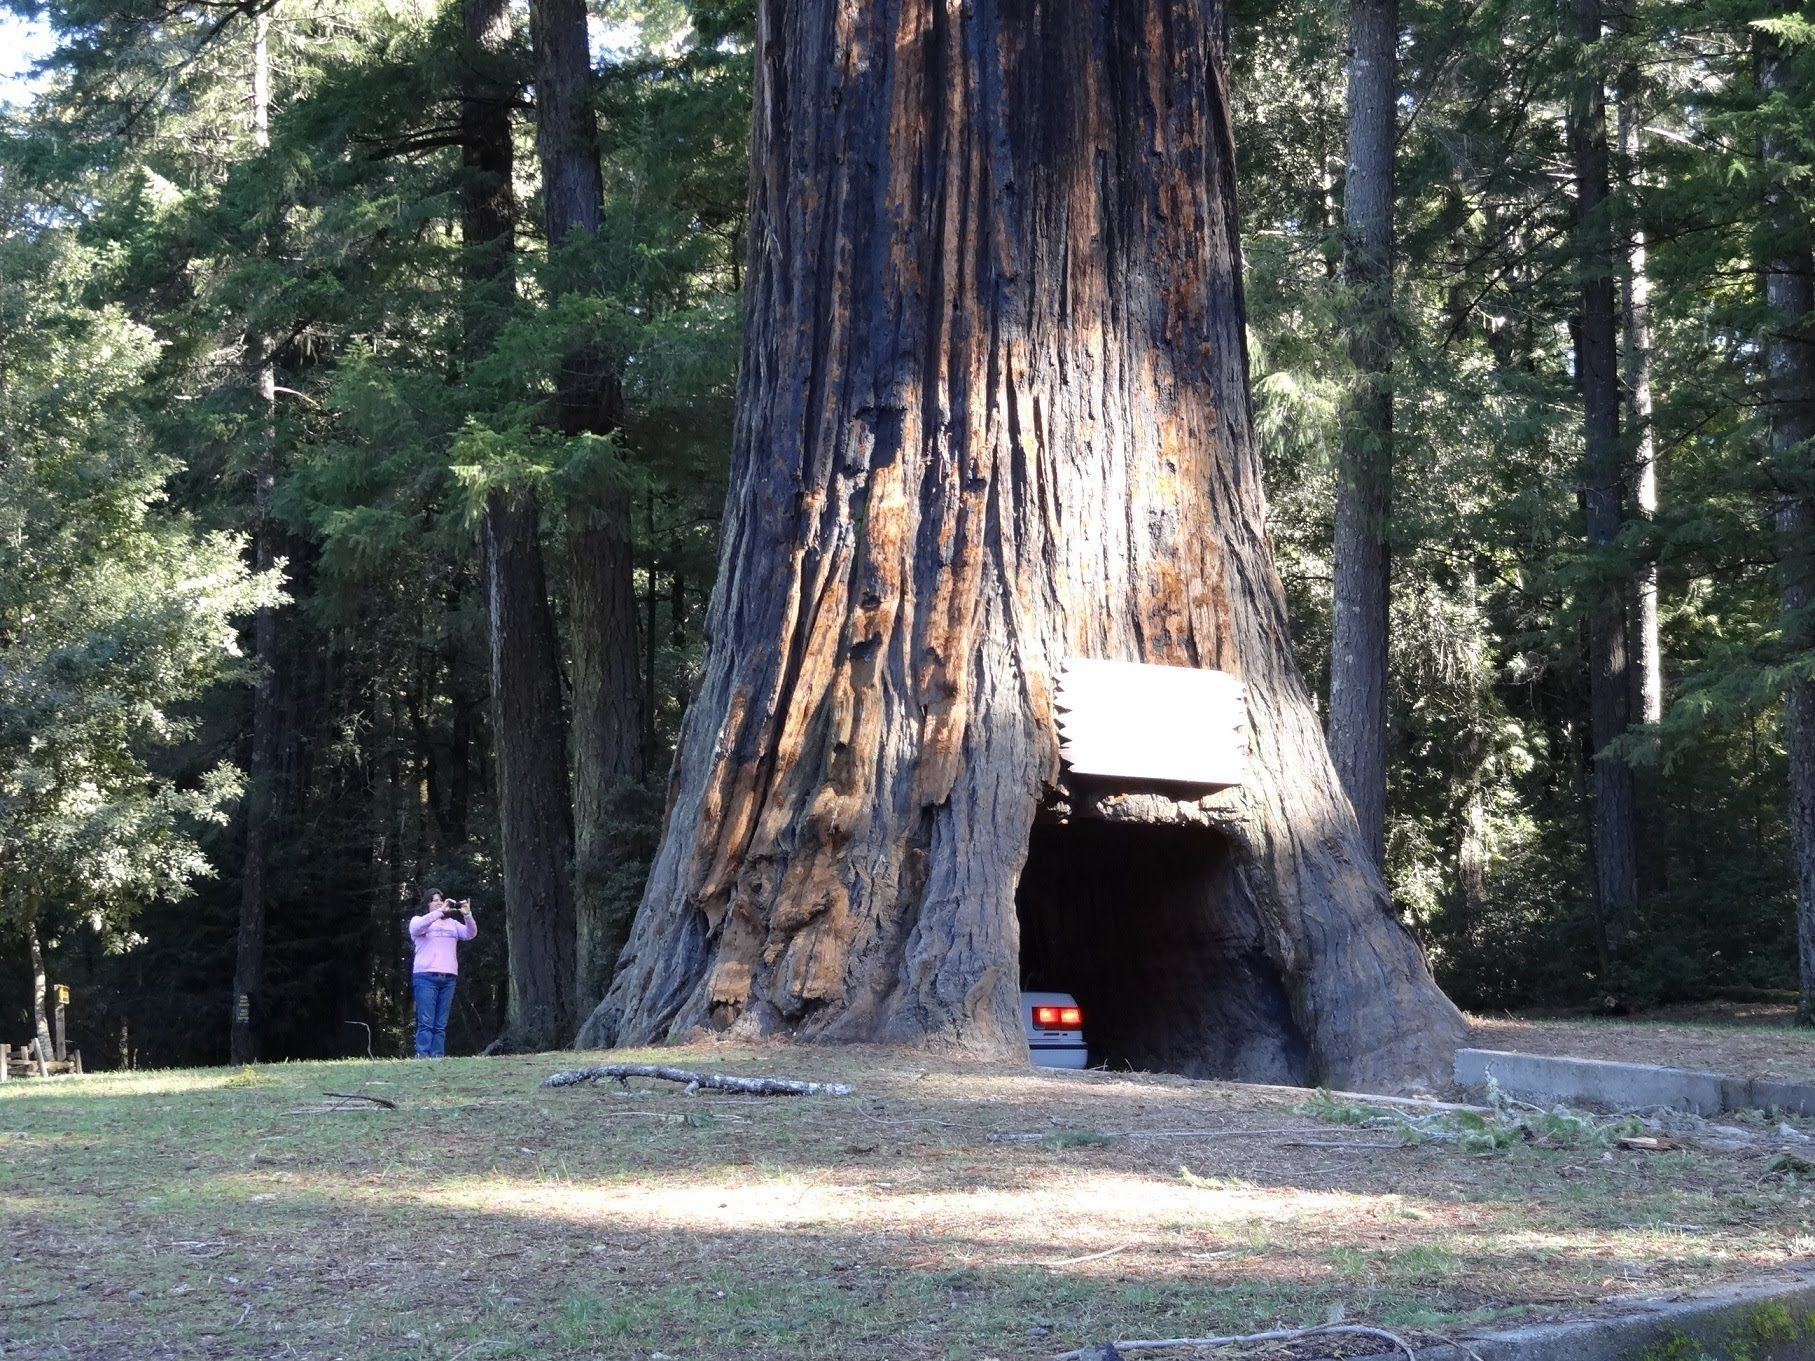 Thursdaythoughts a redwood tree located in redford national park ca drive thru redwood tree world famous chandelier tree forest leggett california ca national park 101 arubaitofo Choice Image